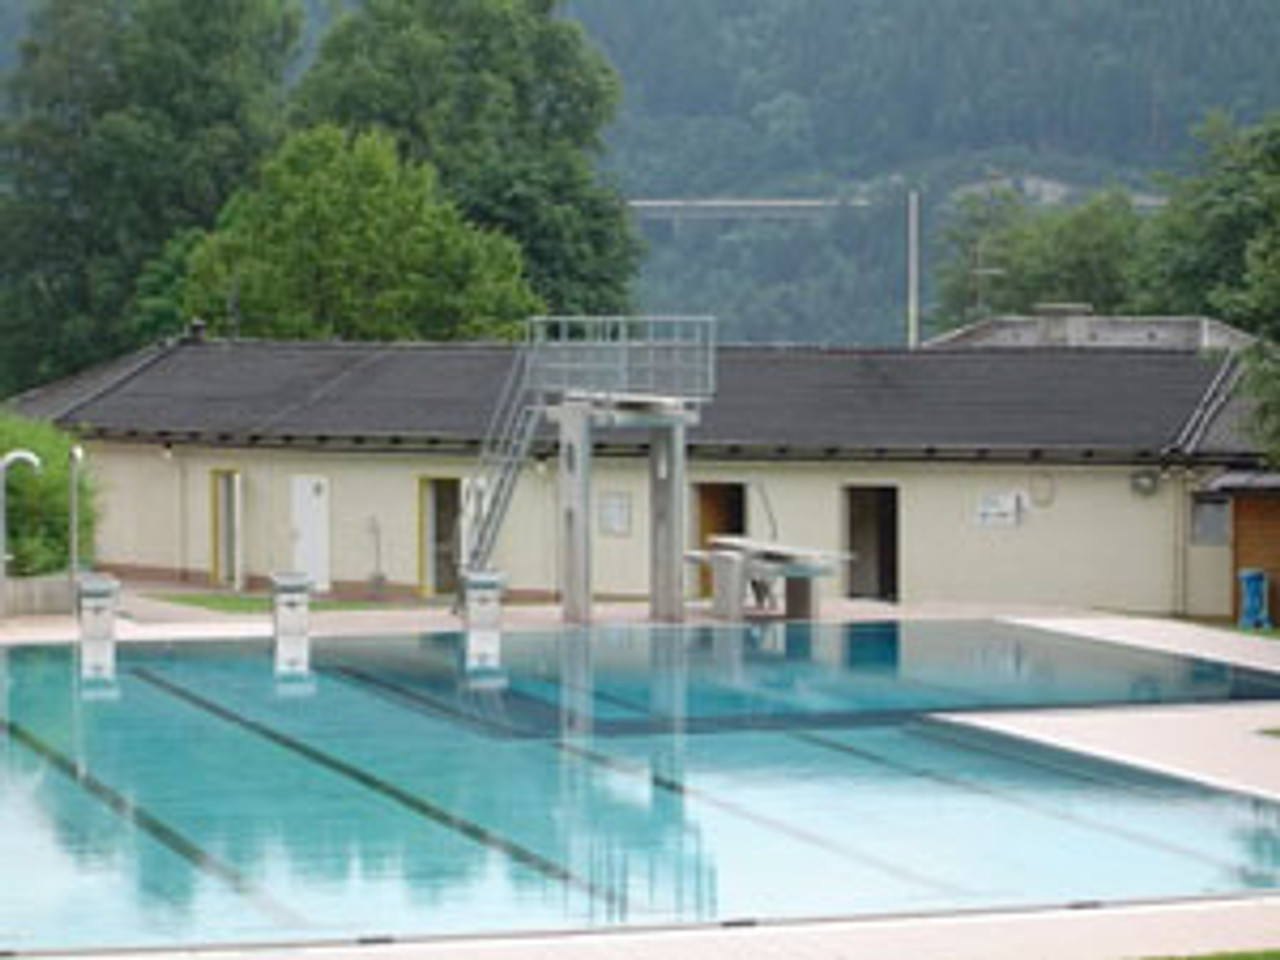 Commercial use for swimming pool solar matting